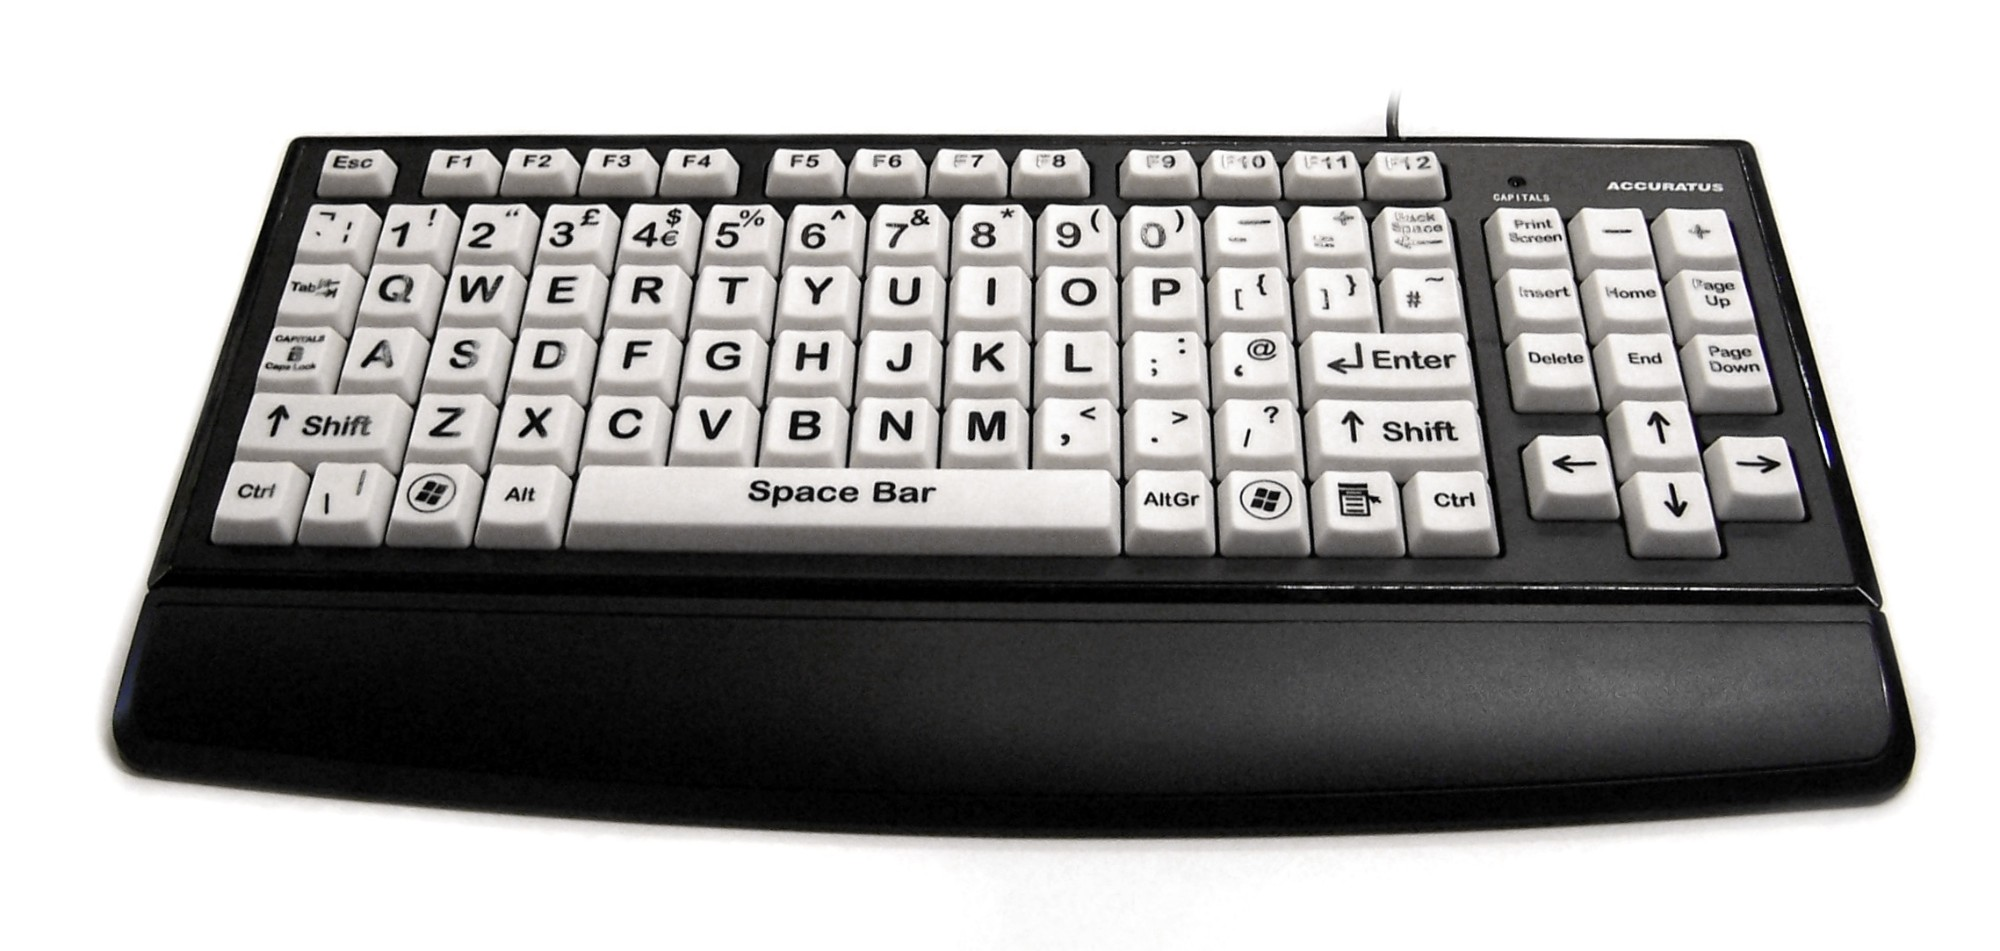 Accuratus An Accuratus product. The Black/White USB Monster keyboard has been primarily designed for